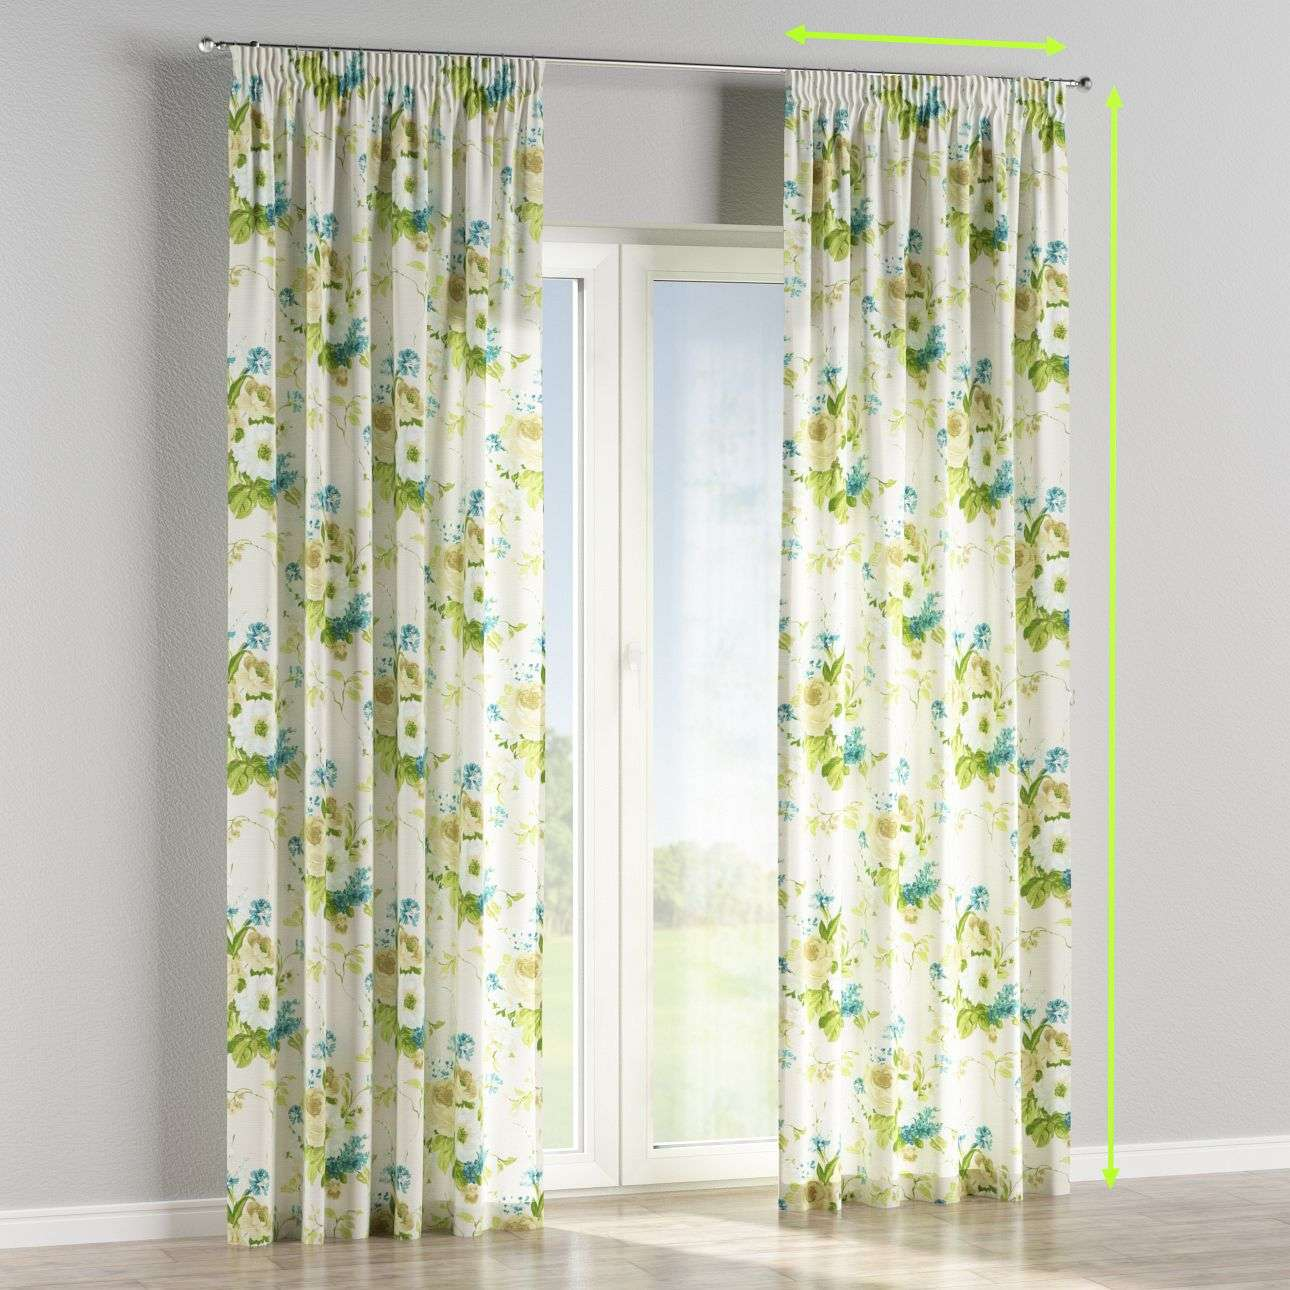 Pencil pleat lined curtains in collection Mirella, fabric: 141-15